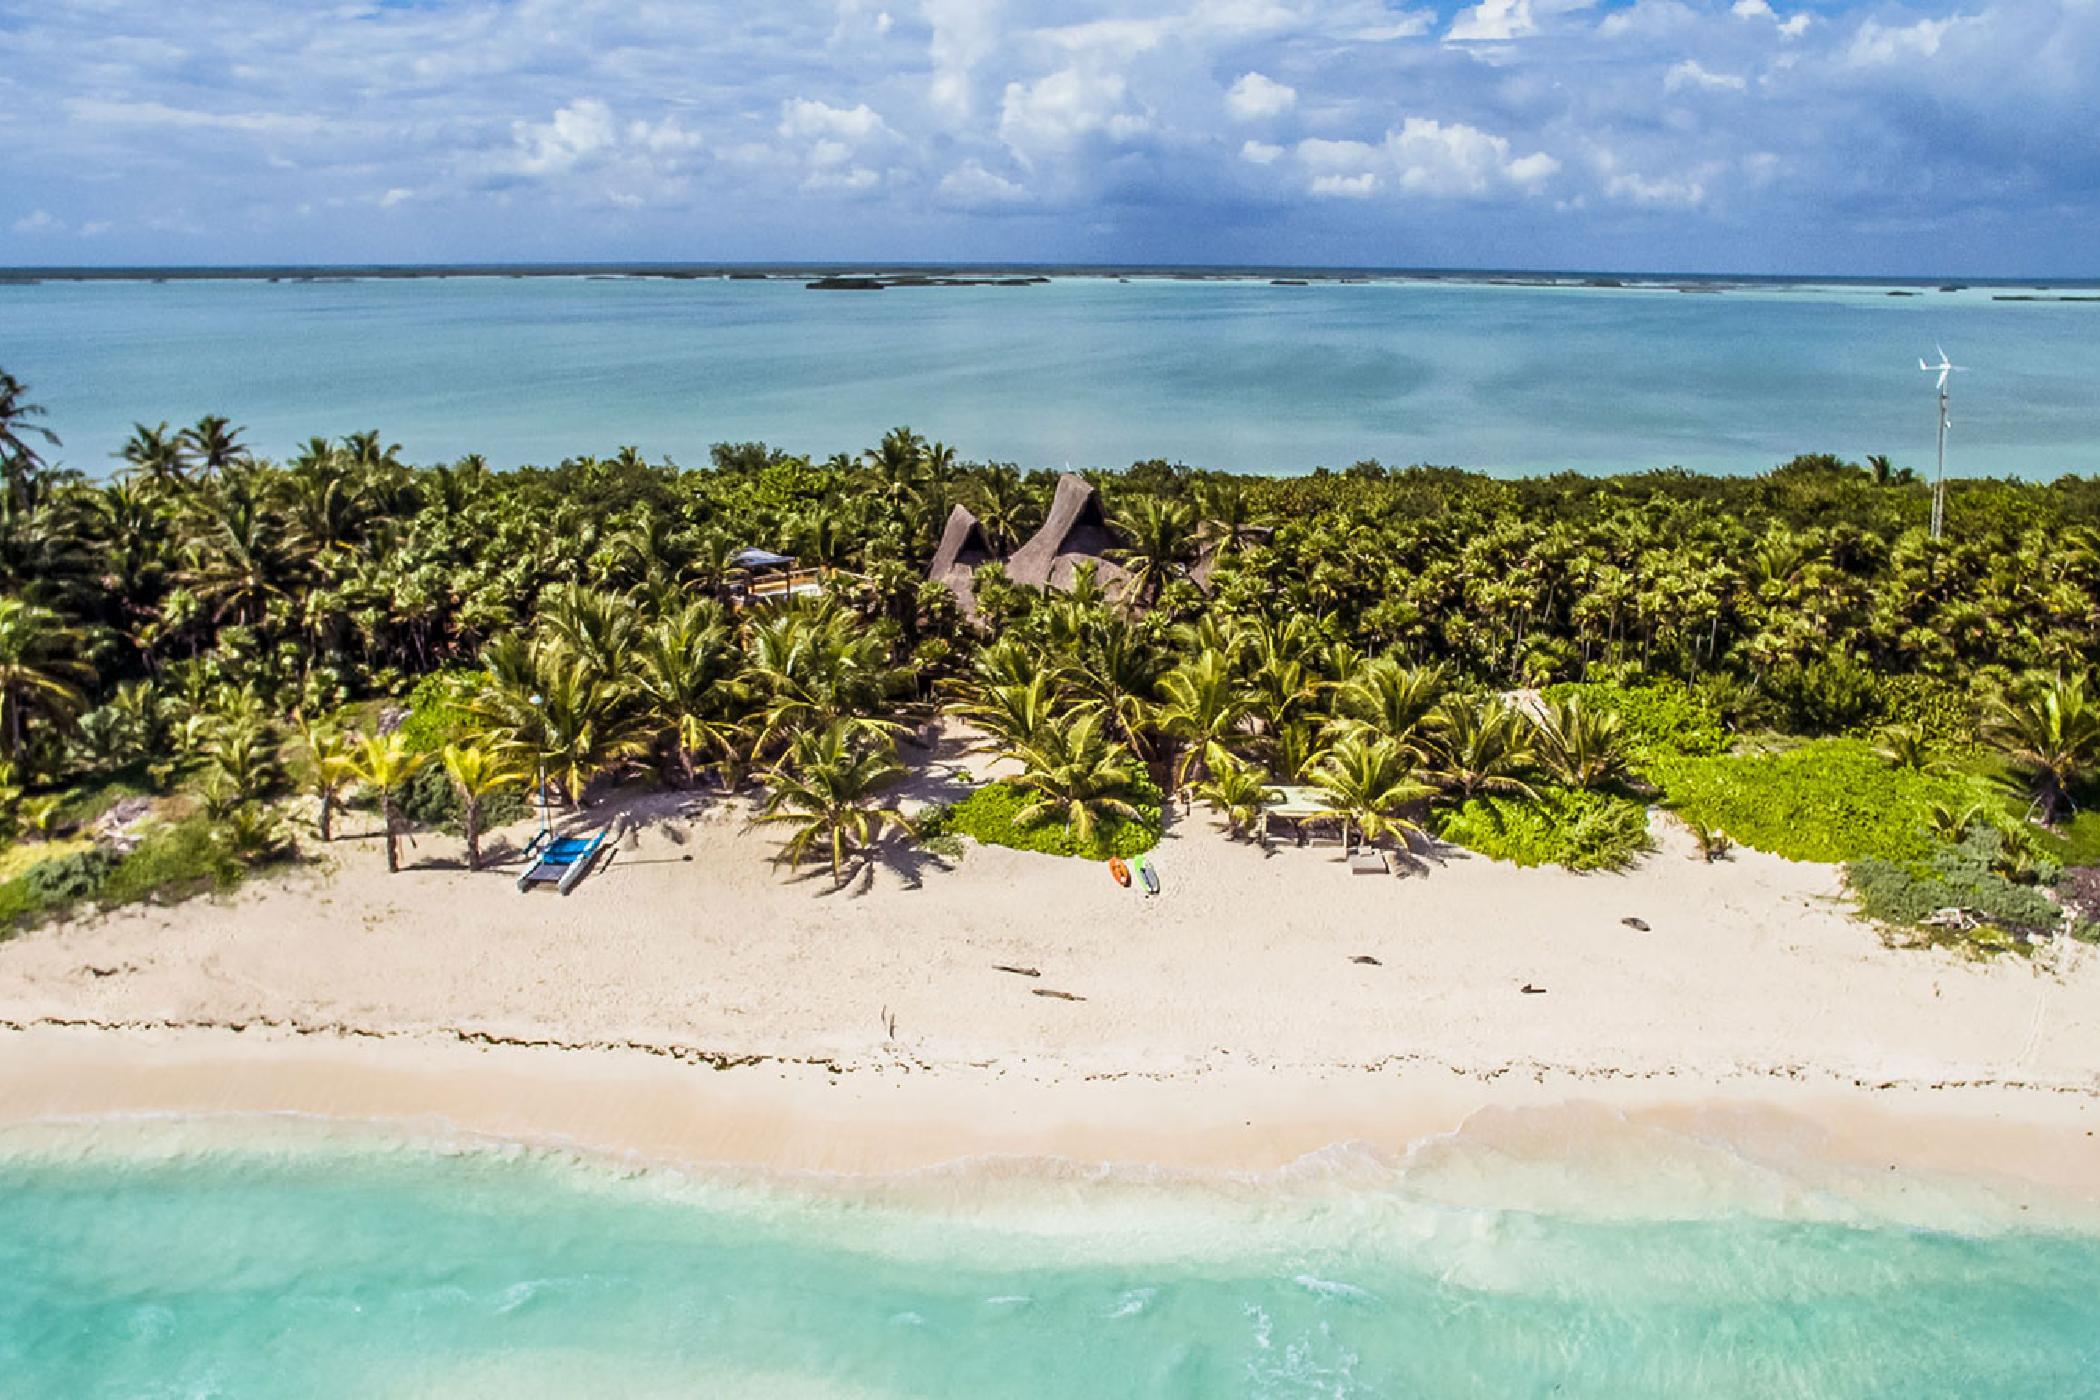 Sian Ka'an 5 BDR eco-friendly luxury estate; swim to reef from private beach, kayak to Mayan canals from lagoon